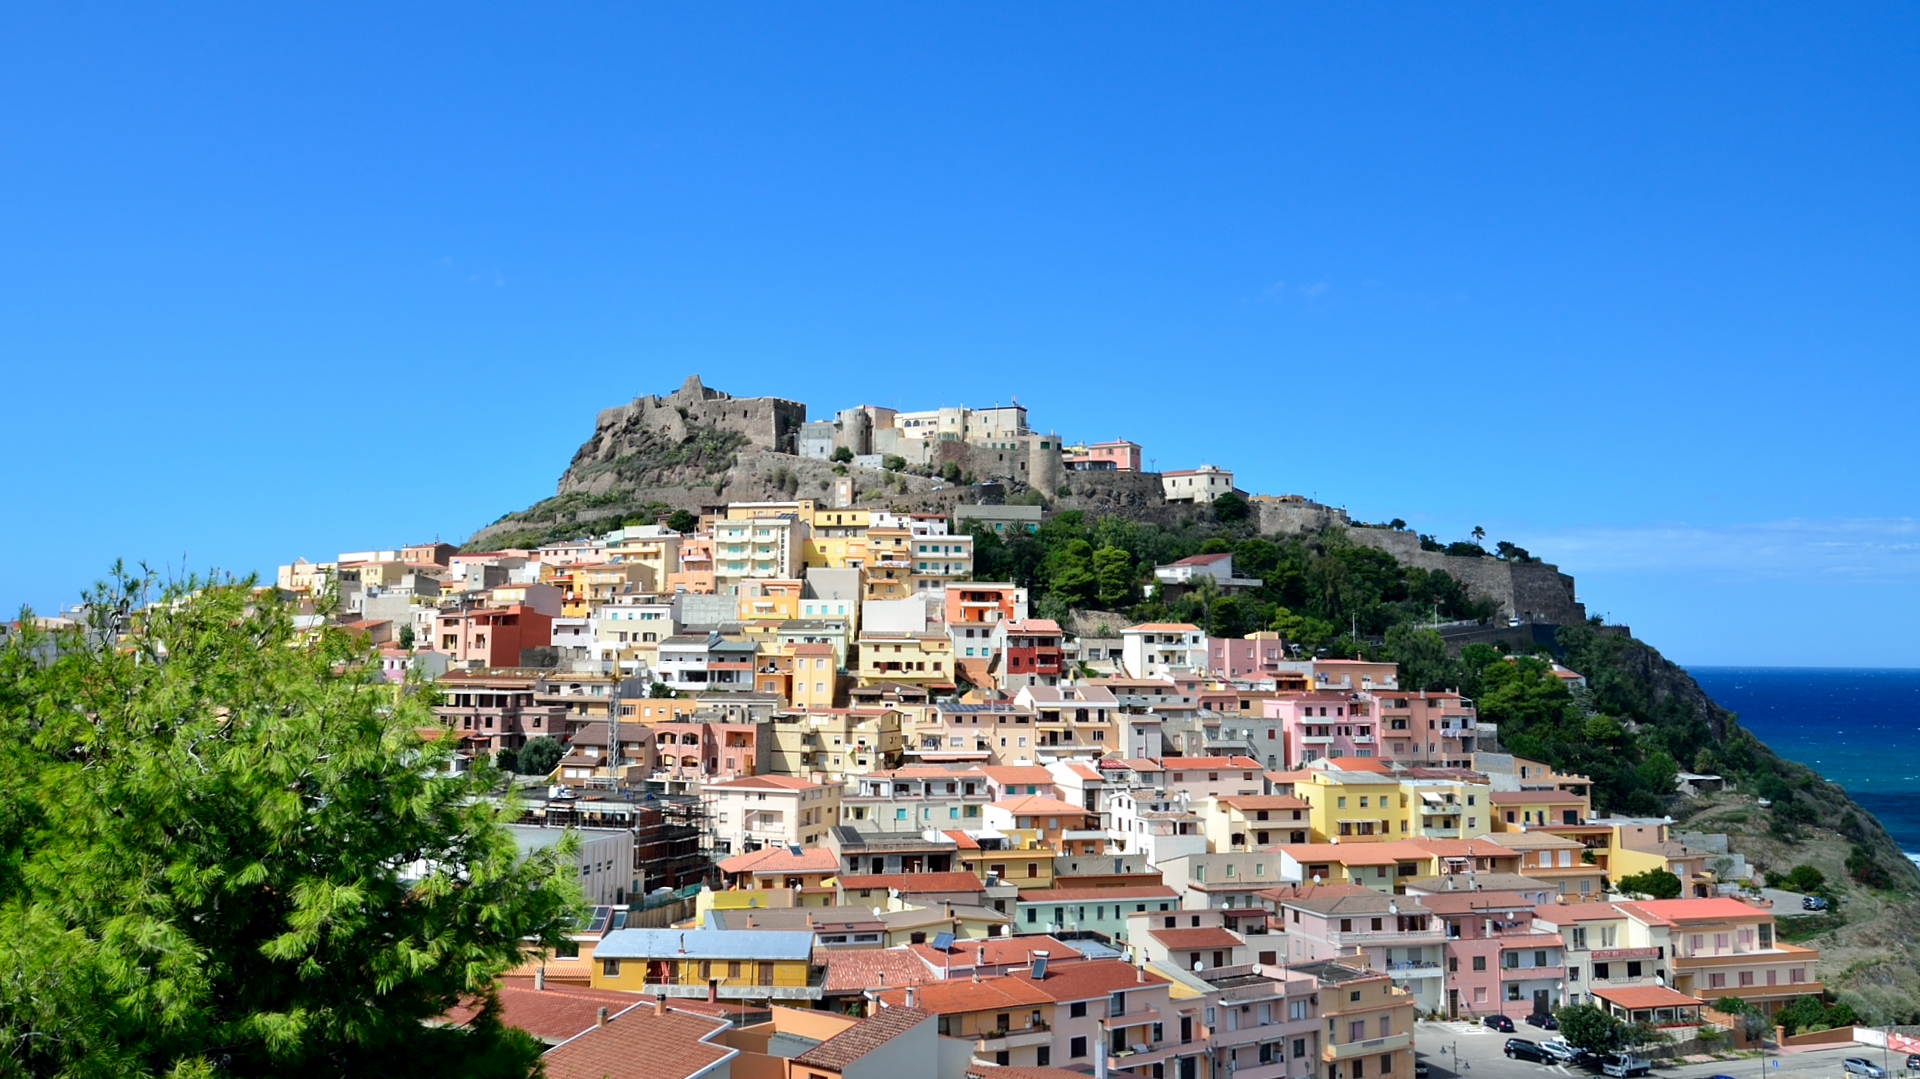 Castelsardo Italy  city pictures gallery : Description Castelsardo Province of Sassari Sardinia, Italy 13 ...